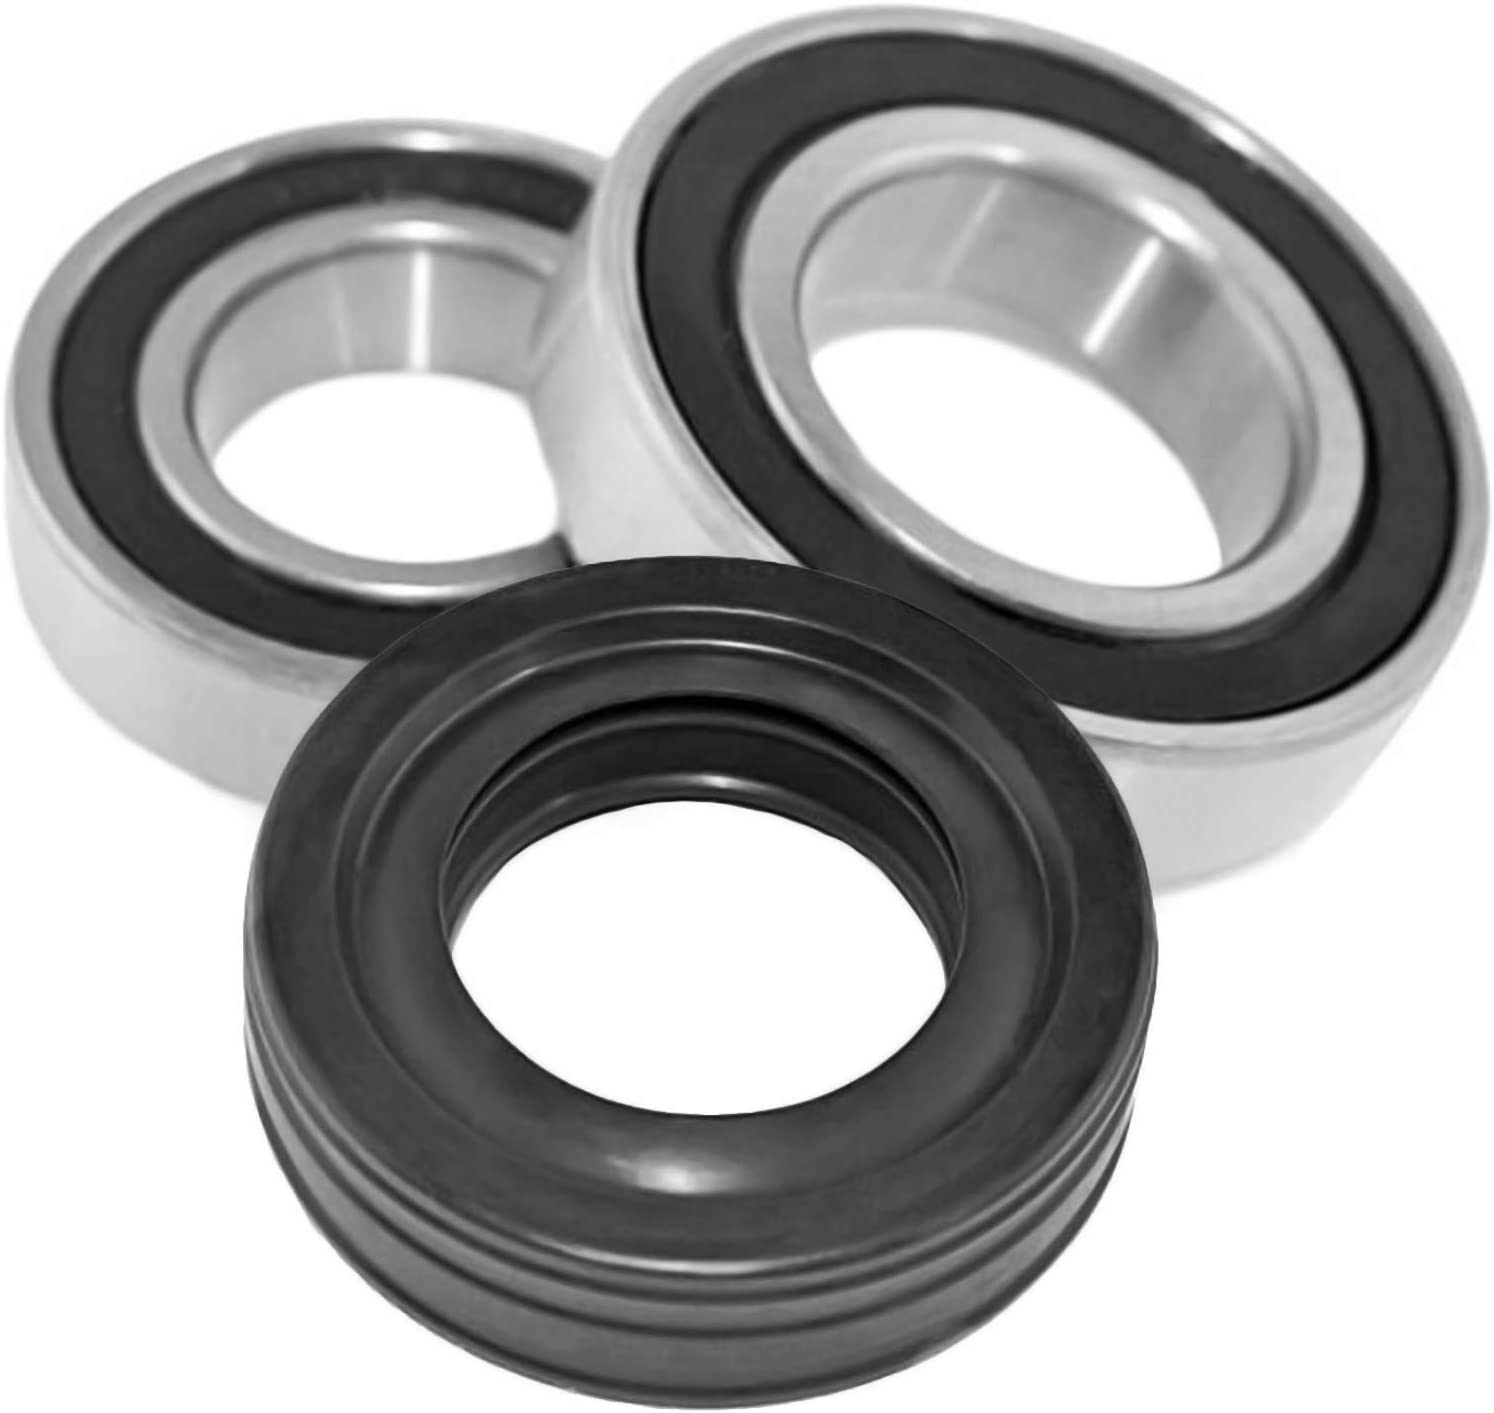 OCTOPUS Compatible with Washer Tub Bearings Kit replacement W10435302 W10447783